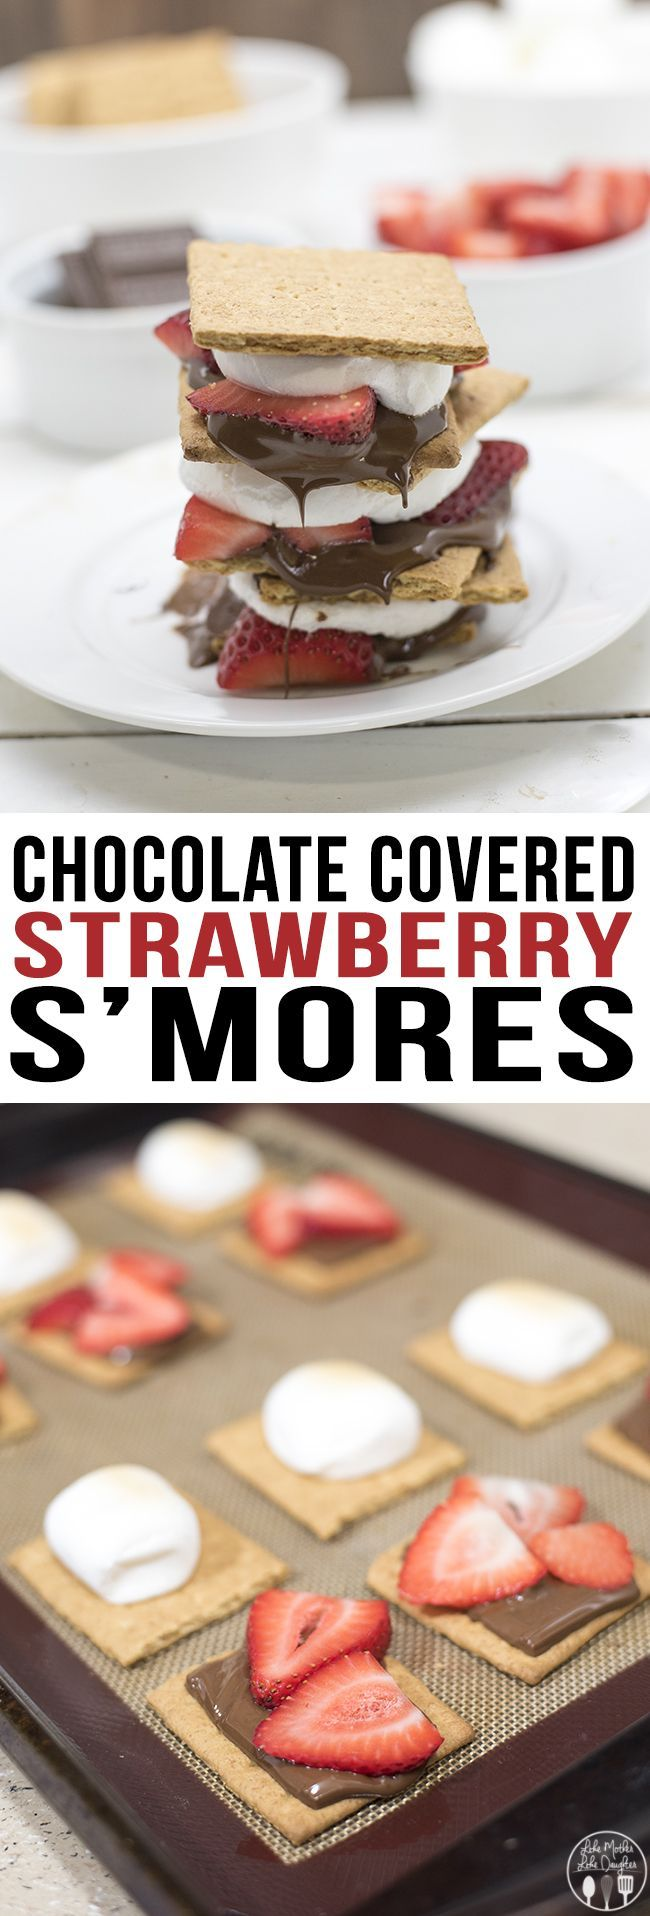 Chocolate Covered Strawberry S'mores - The addition of strawberries to your smores makes them an even more tasty summer time treat! Or make them year round in your oven! @walmart #LetsMakeSmores #ad